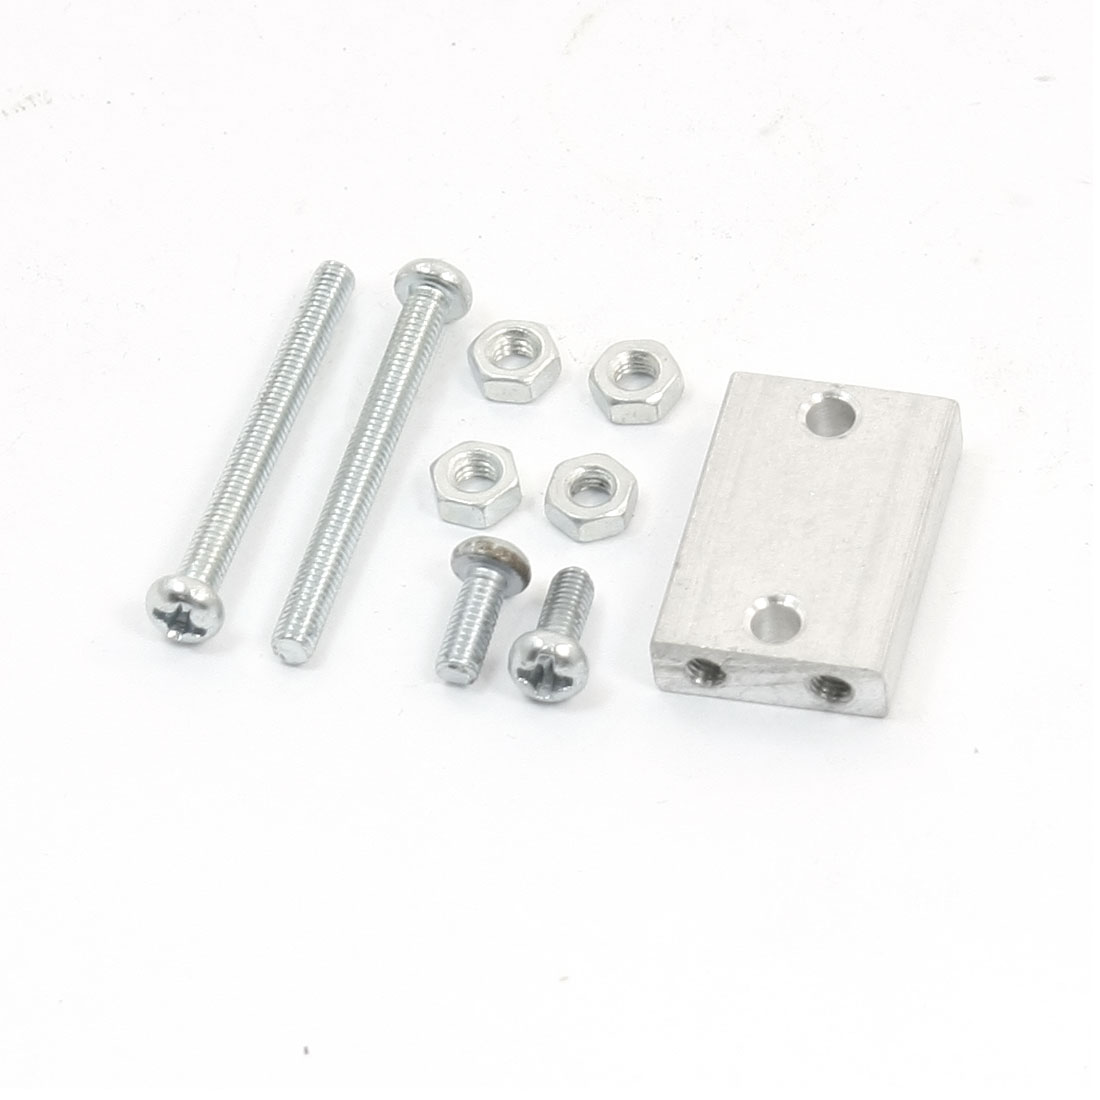 TT Motor Mount Holder Bracket Fasteners for RC Model Car